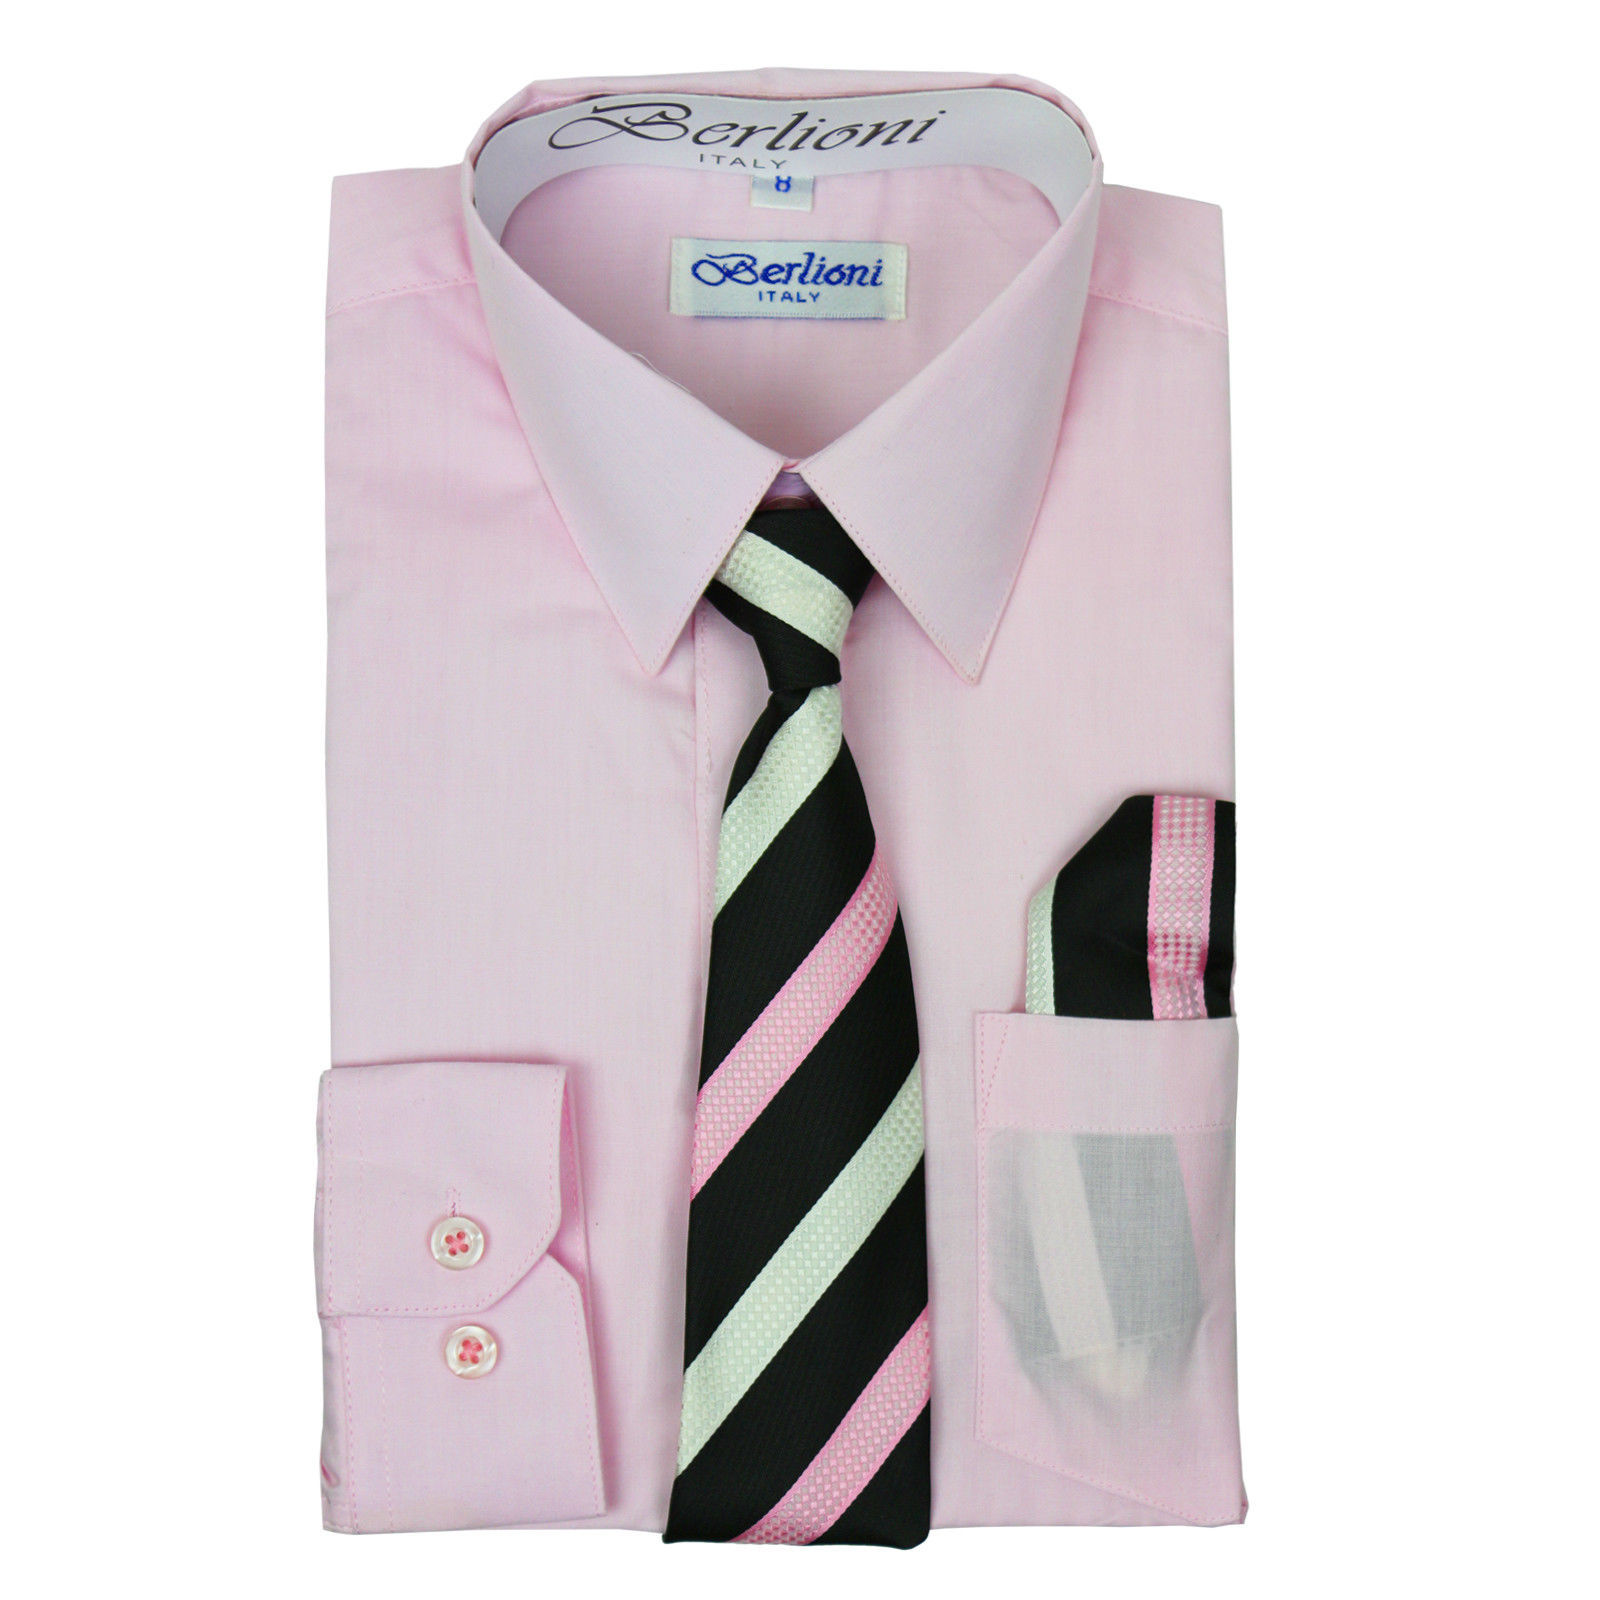 Berlioni Italy Toddlers Long Sleeve Pink Dress Shirt With Tie Size 2 NO HANKY